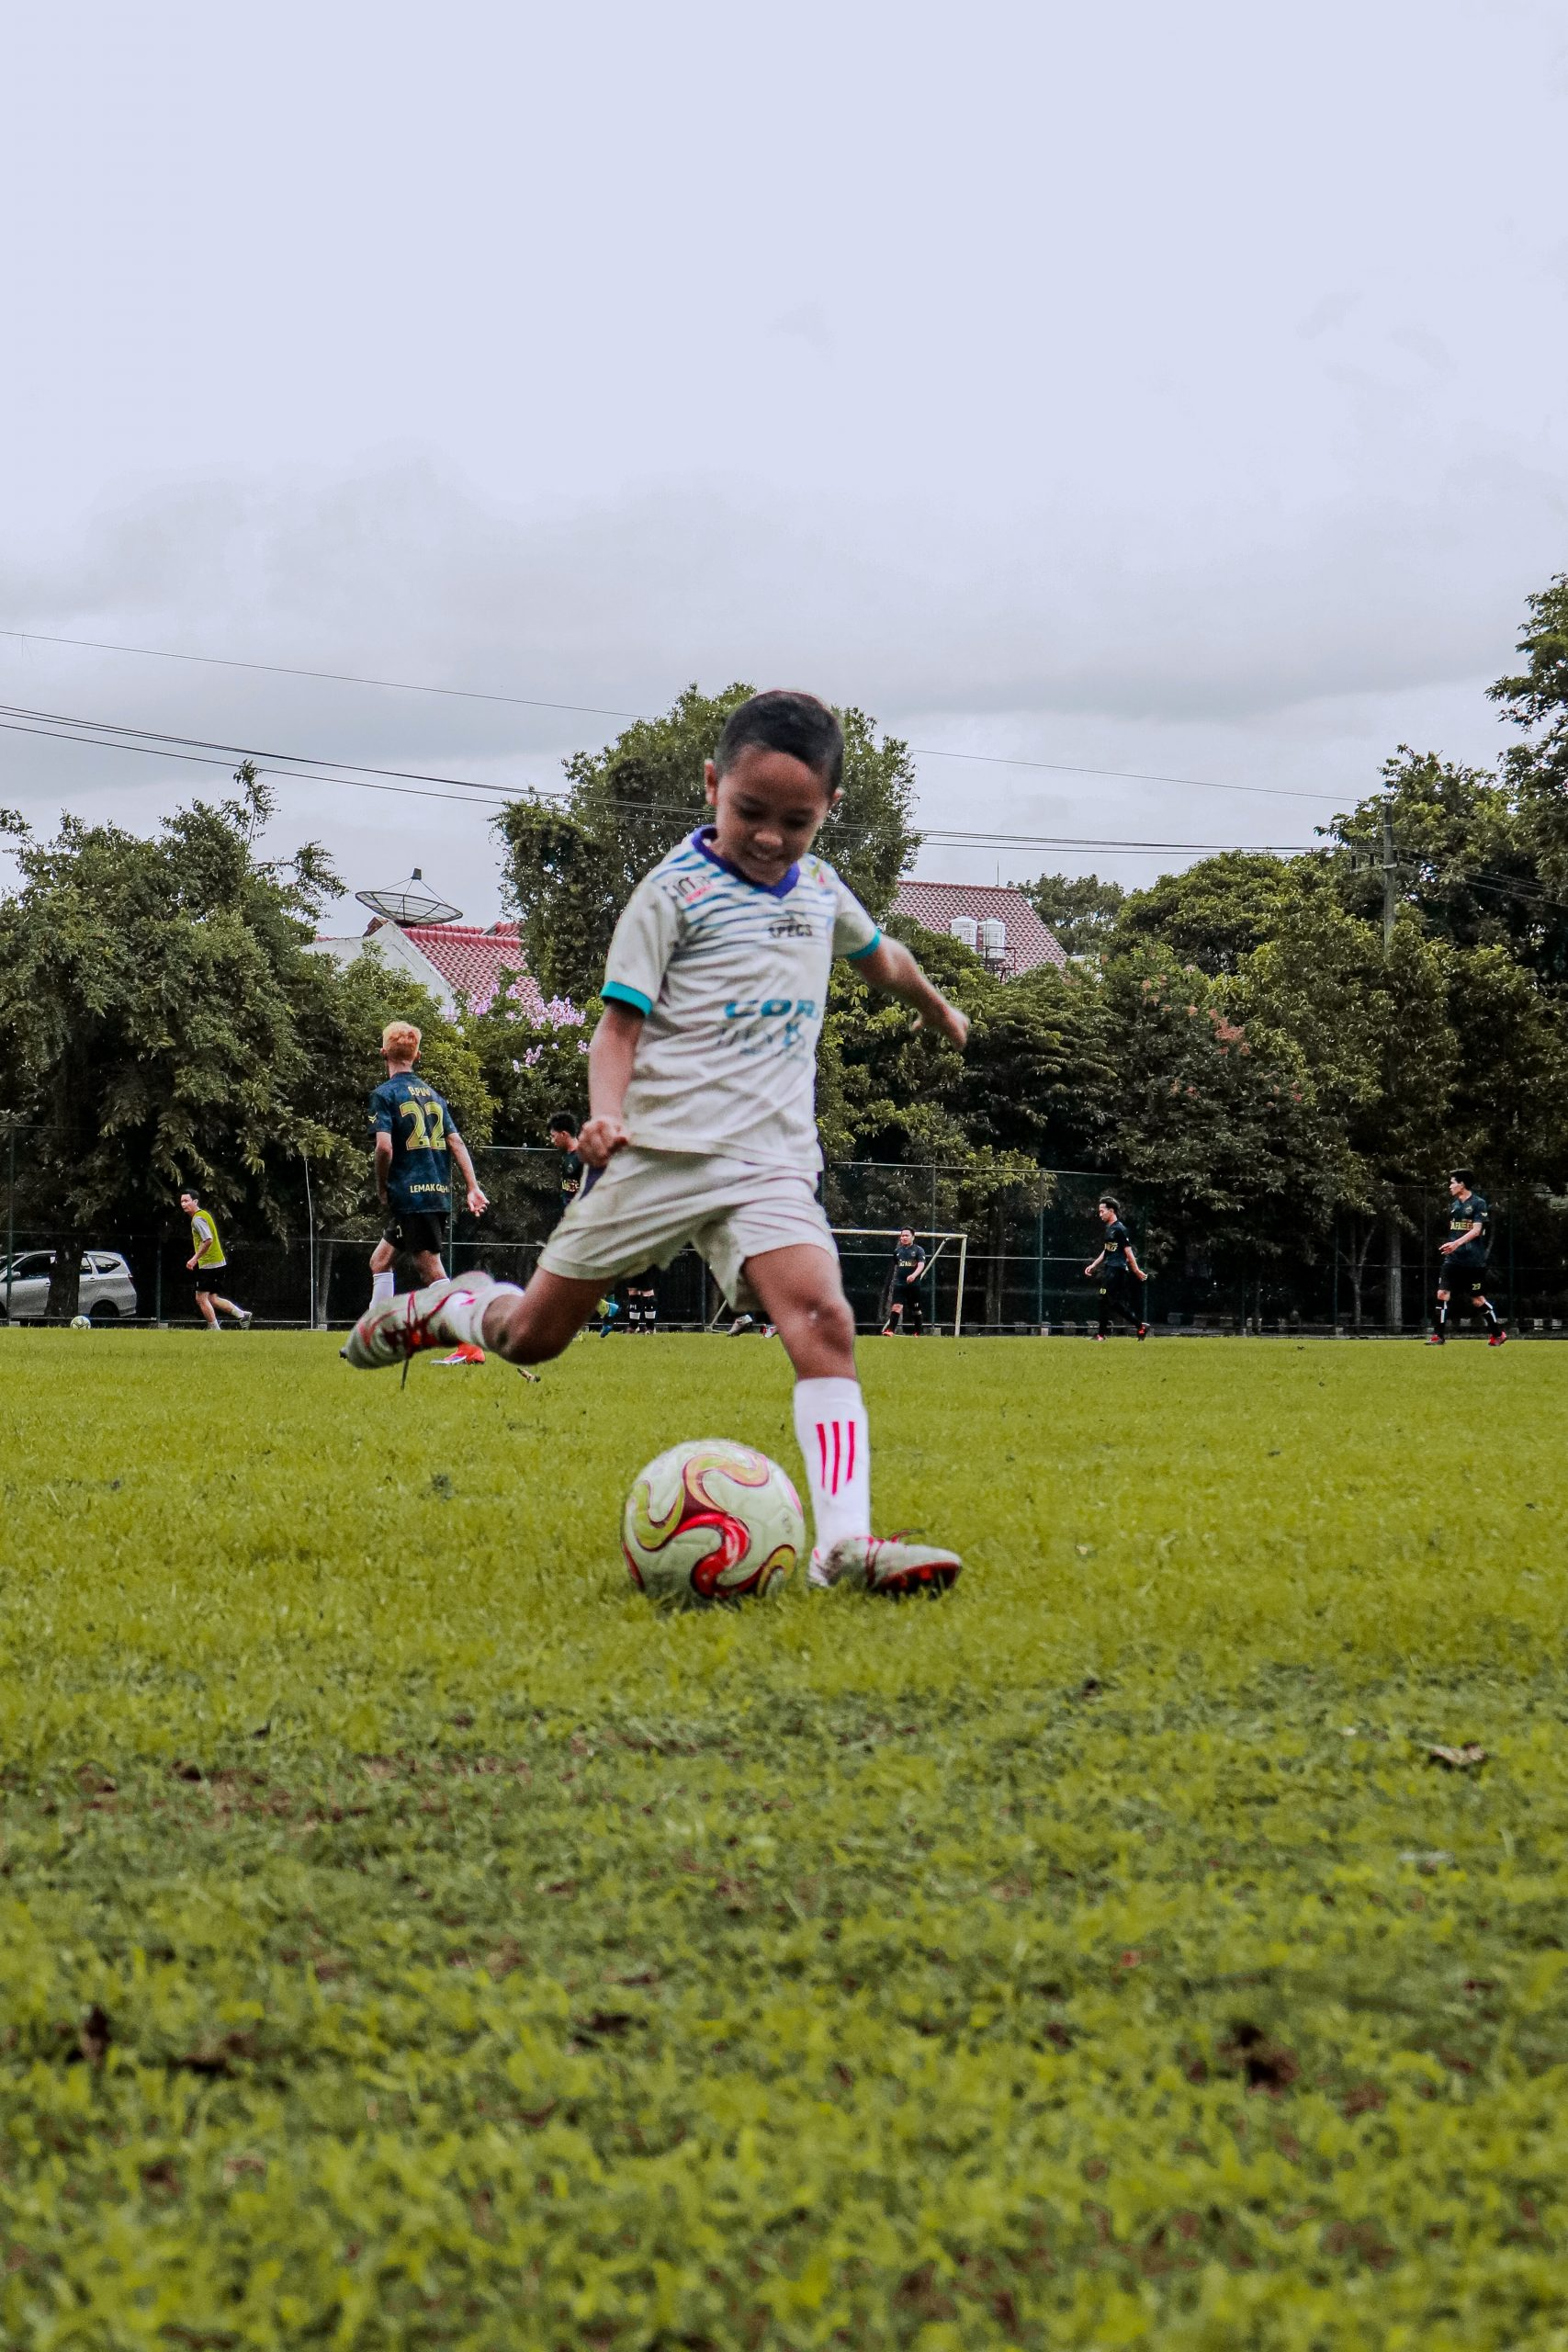 How to Encourage Your Kids to Play Sports without Being Pushy